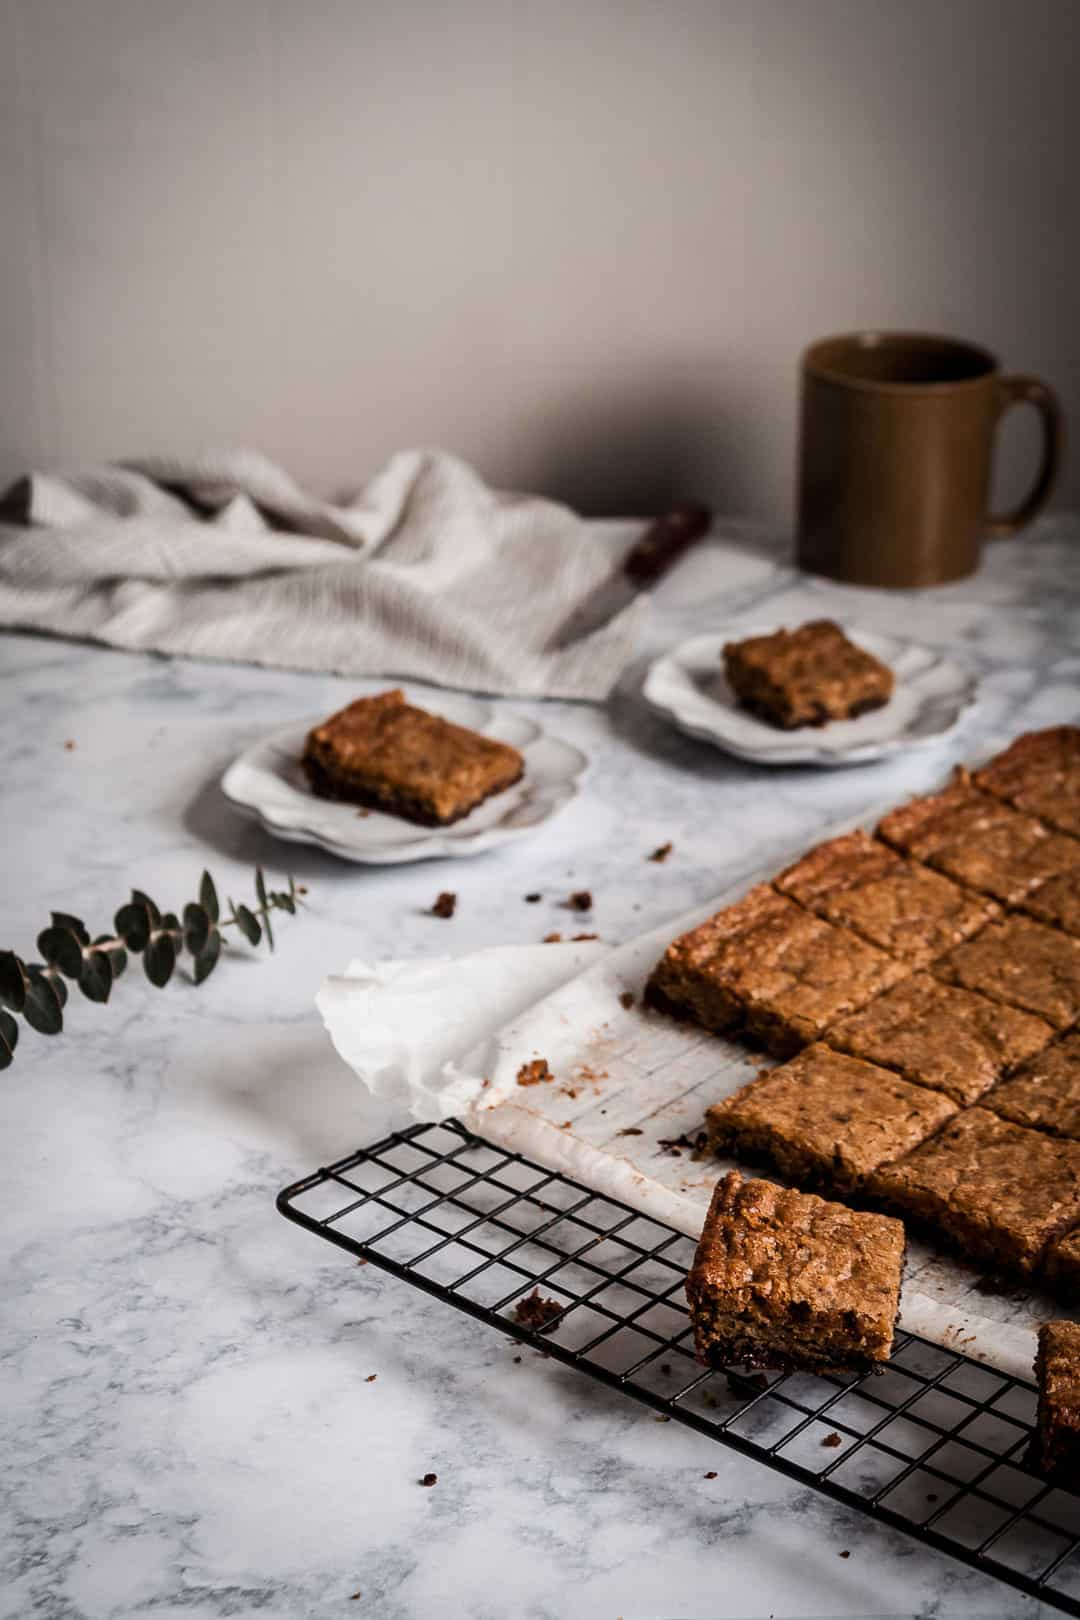 kitchen scene of butterscotch dark chocolate bars cooling on a marble counter with a knife and mug of coffee nearby